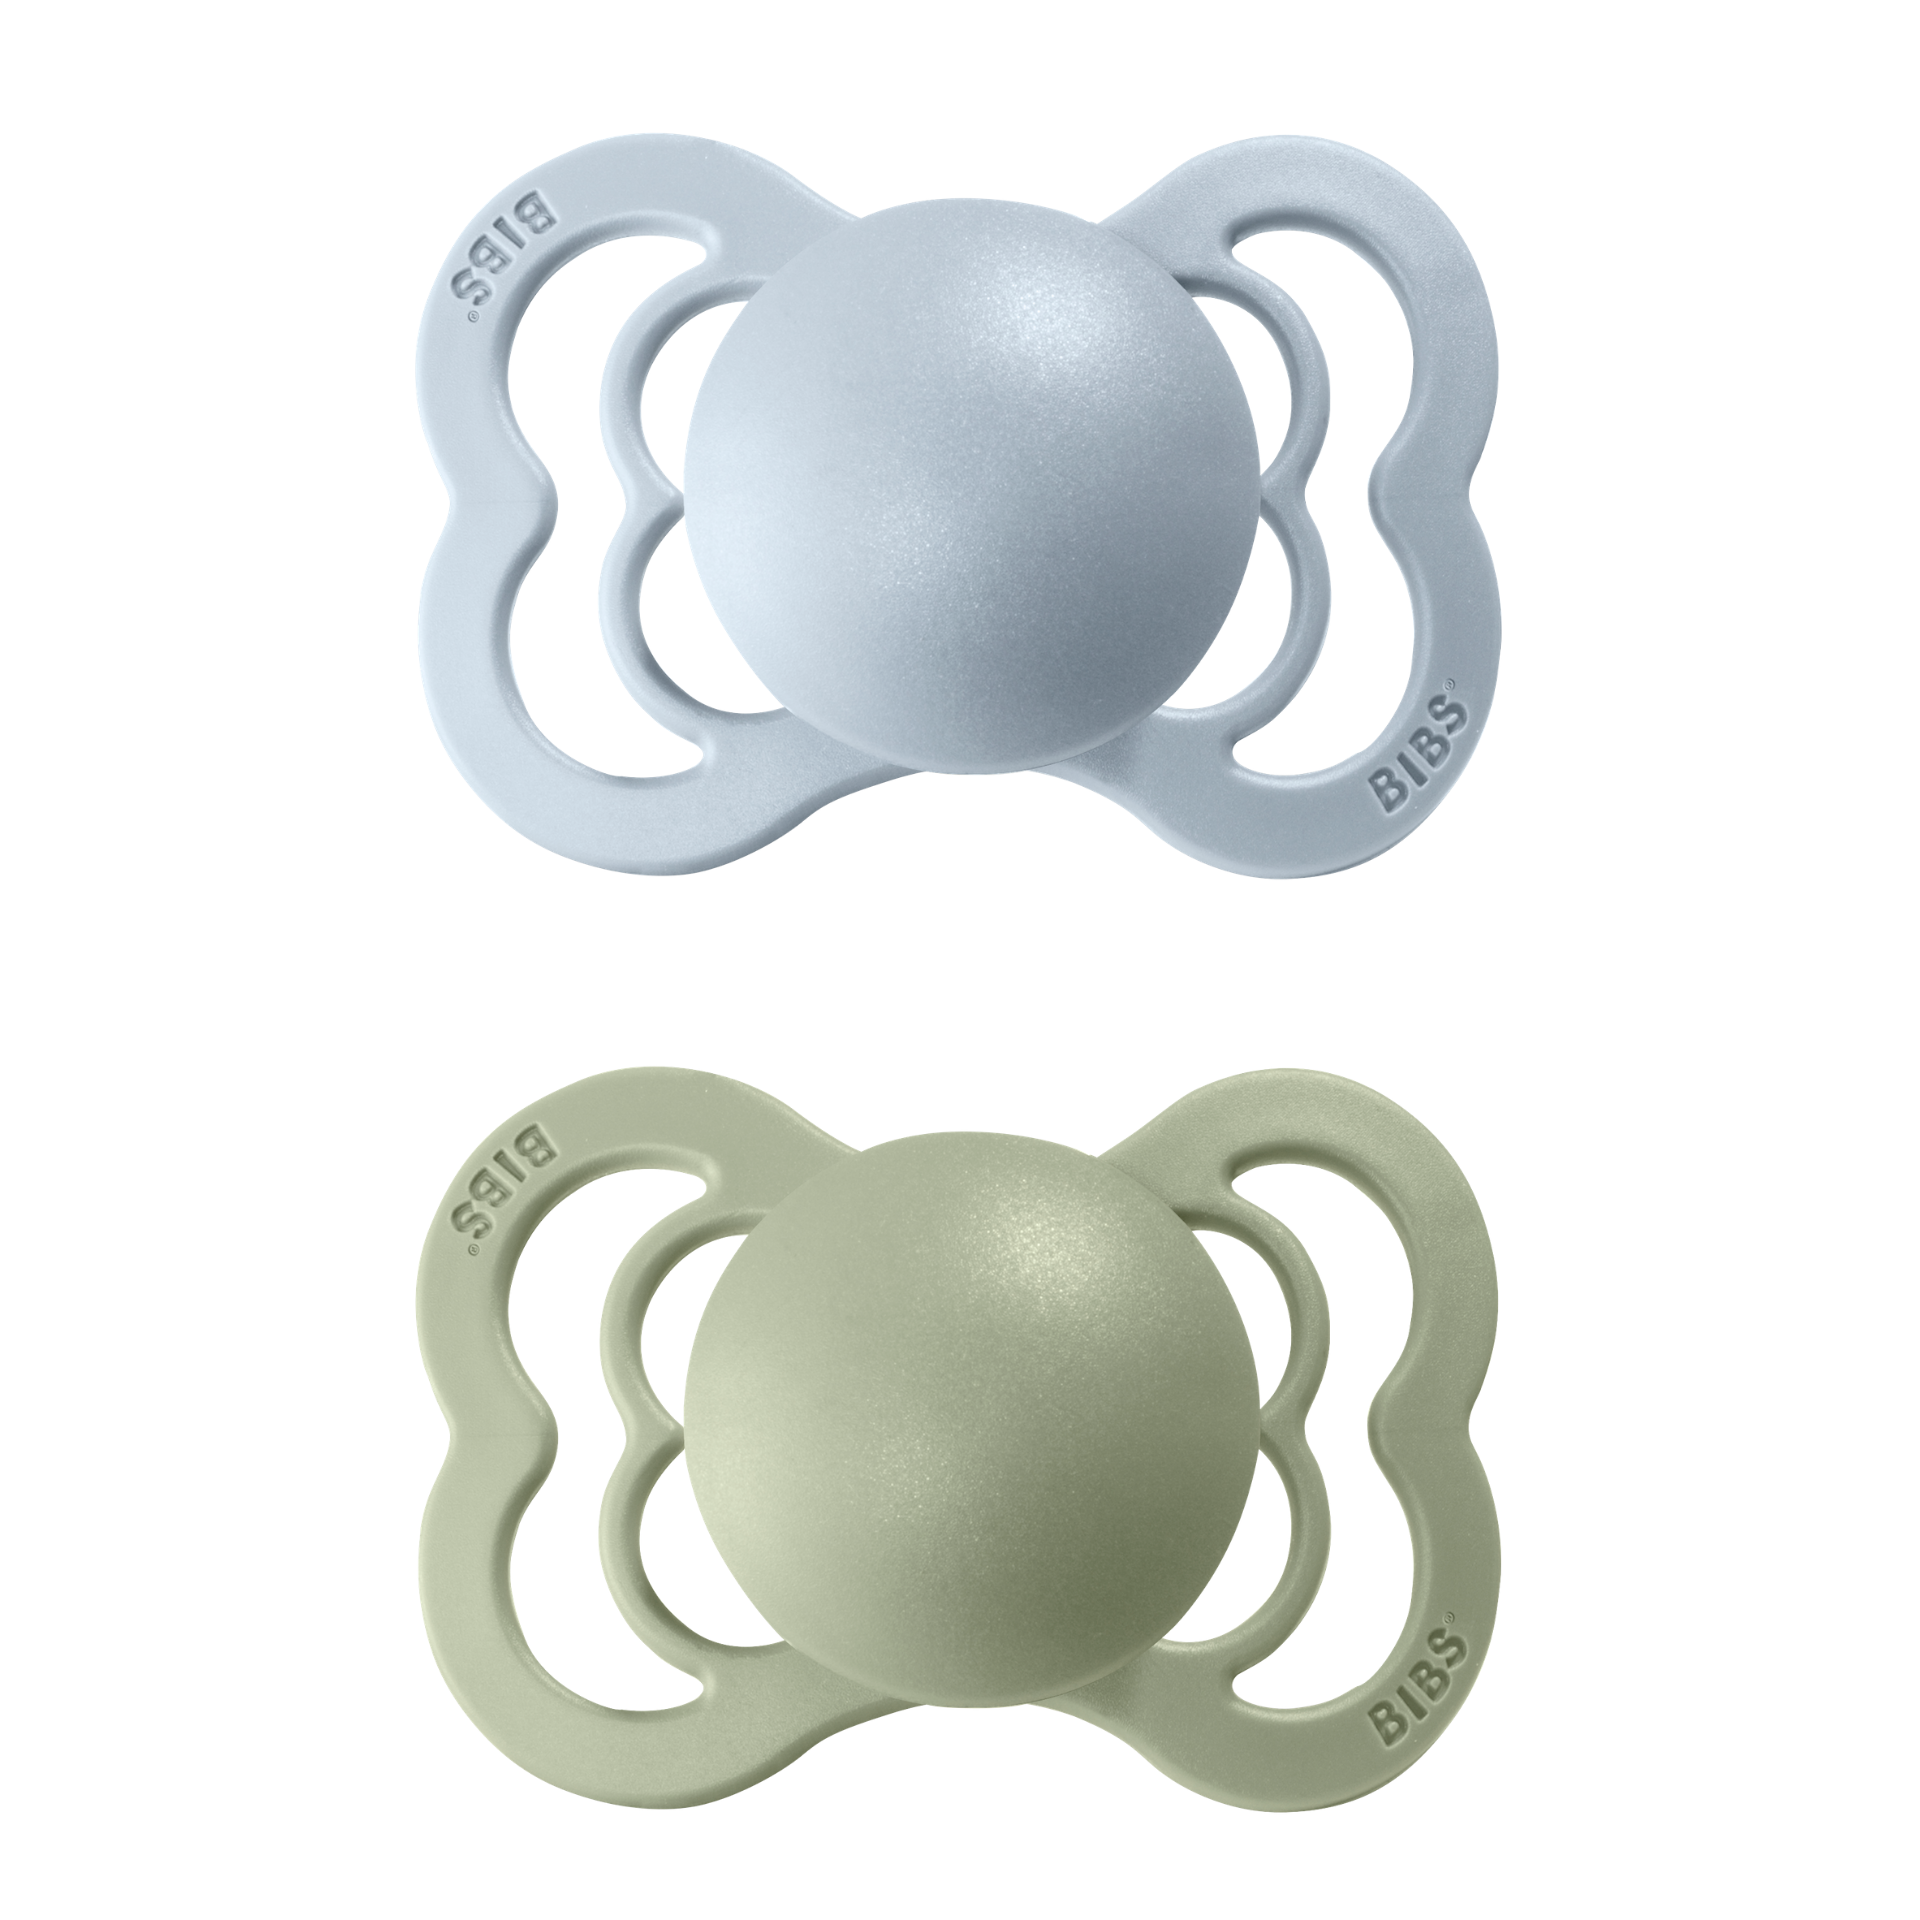 2-pack Bibs supreme pacifier silicone 0-6 M sage + baby blue